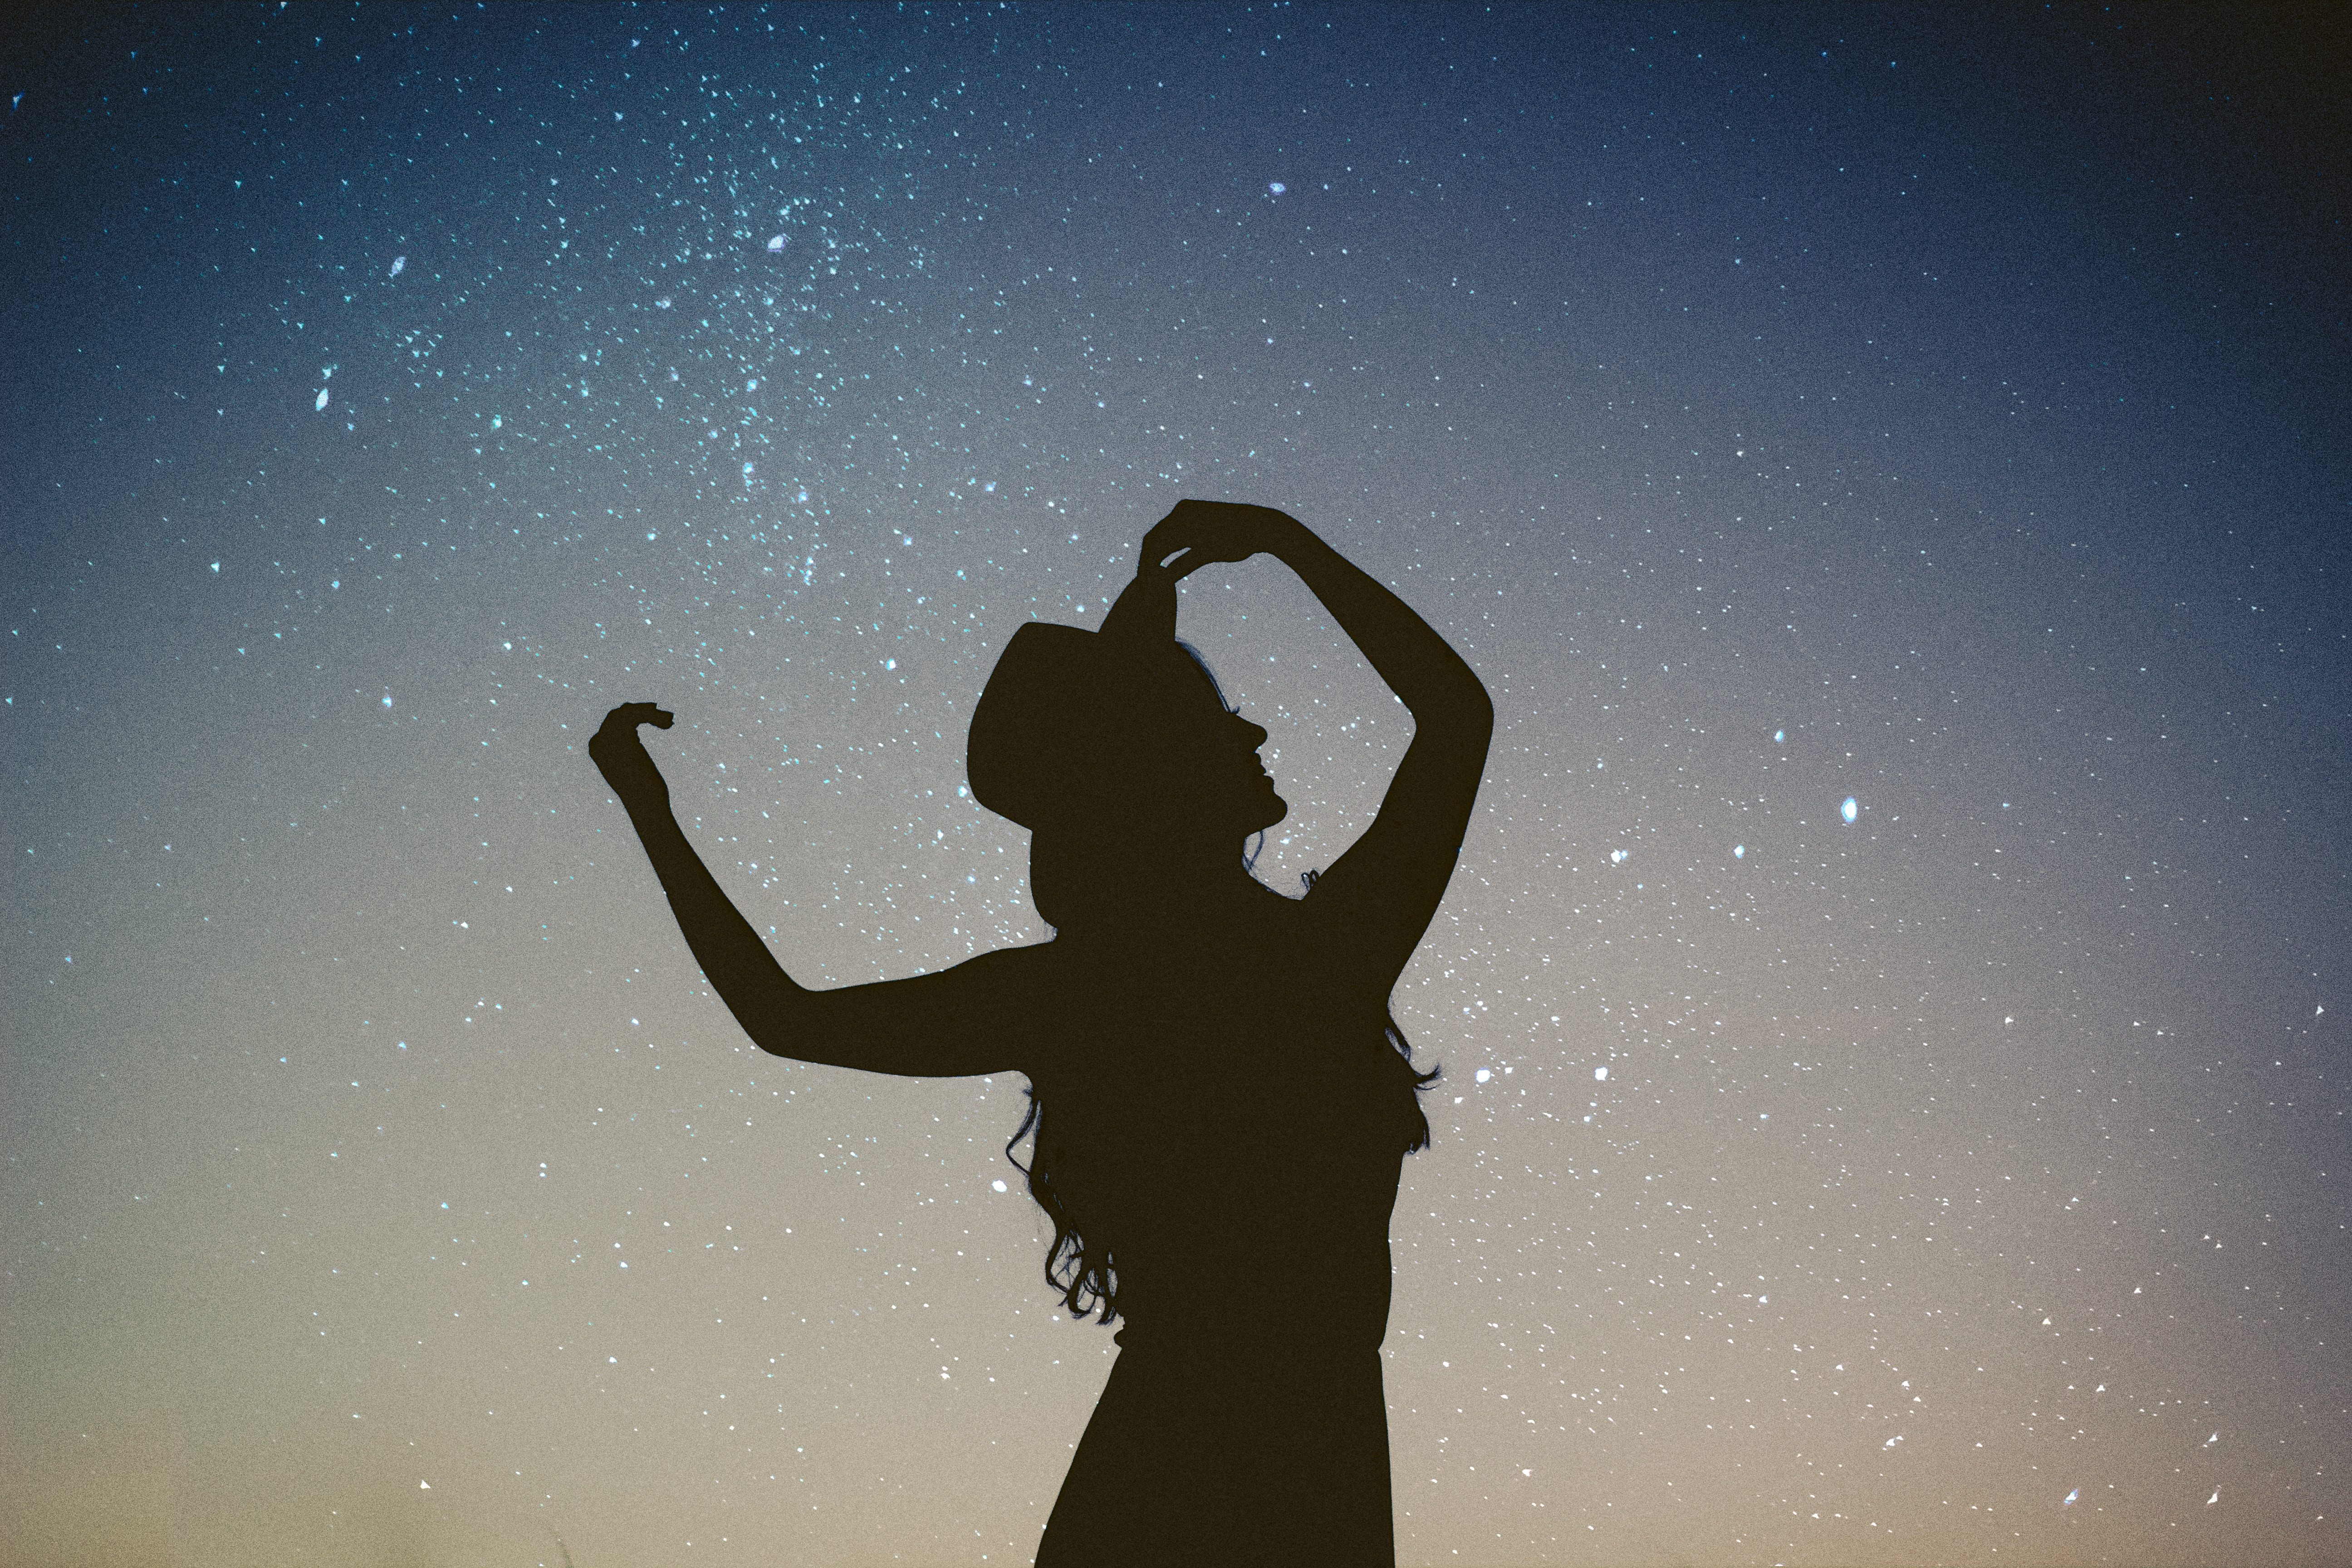 silhouette of girl against nightsky